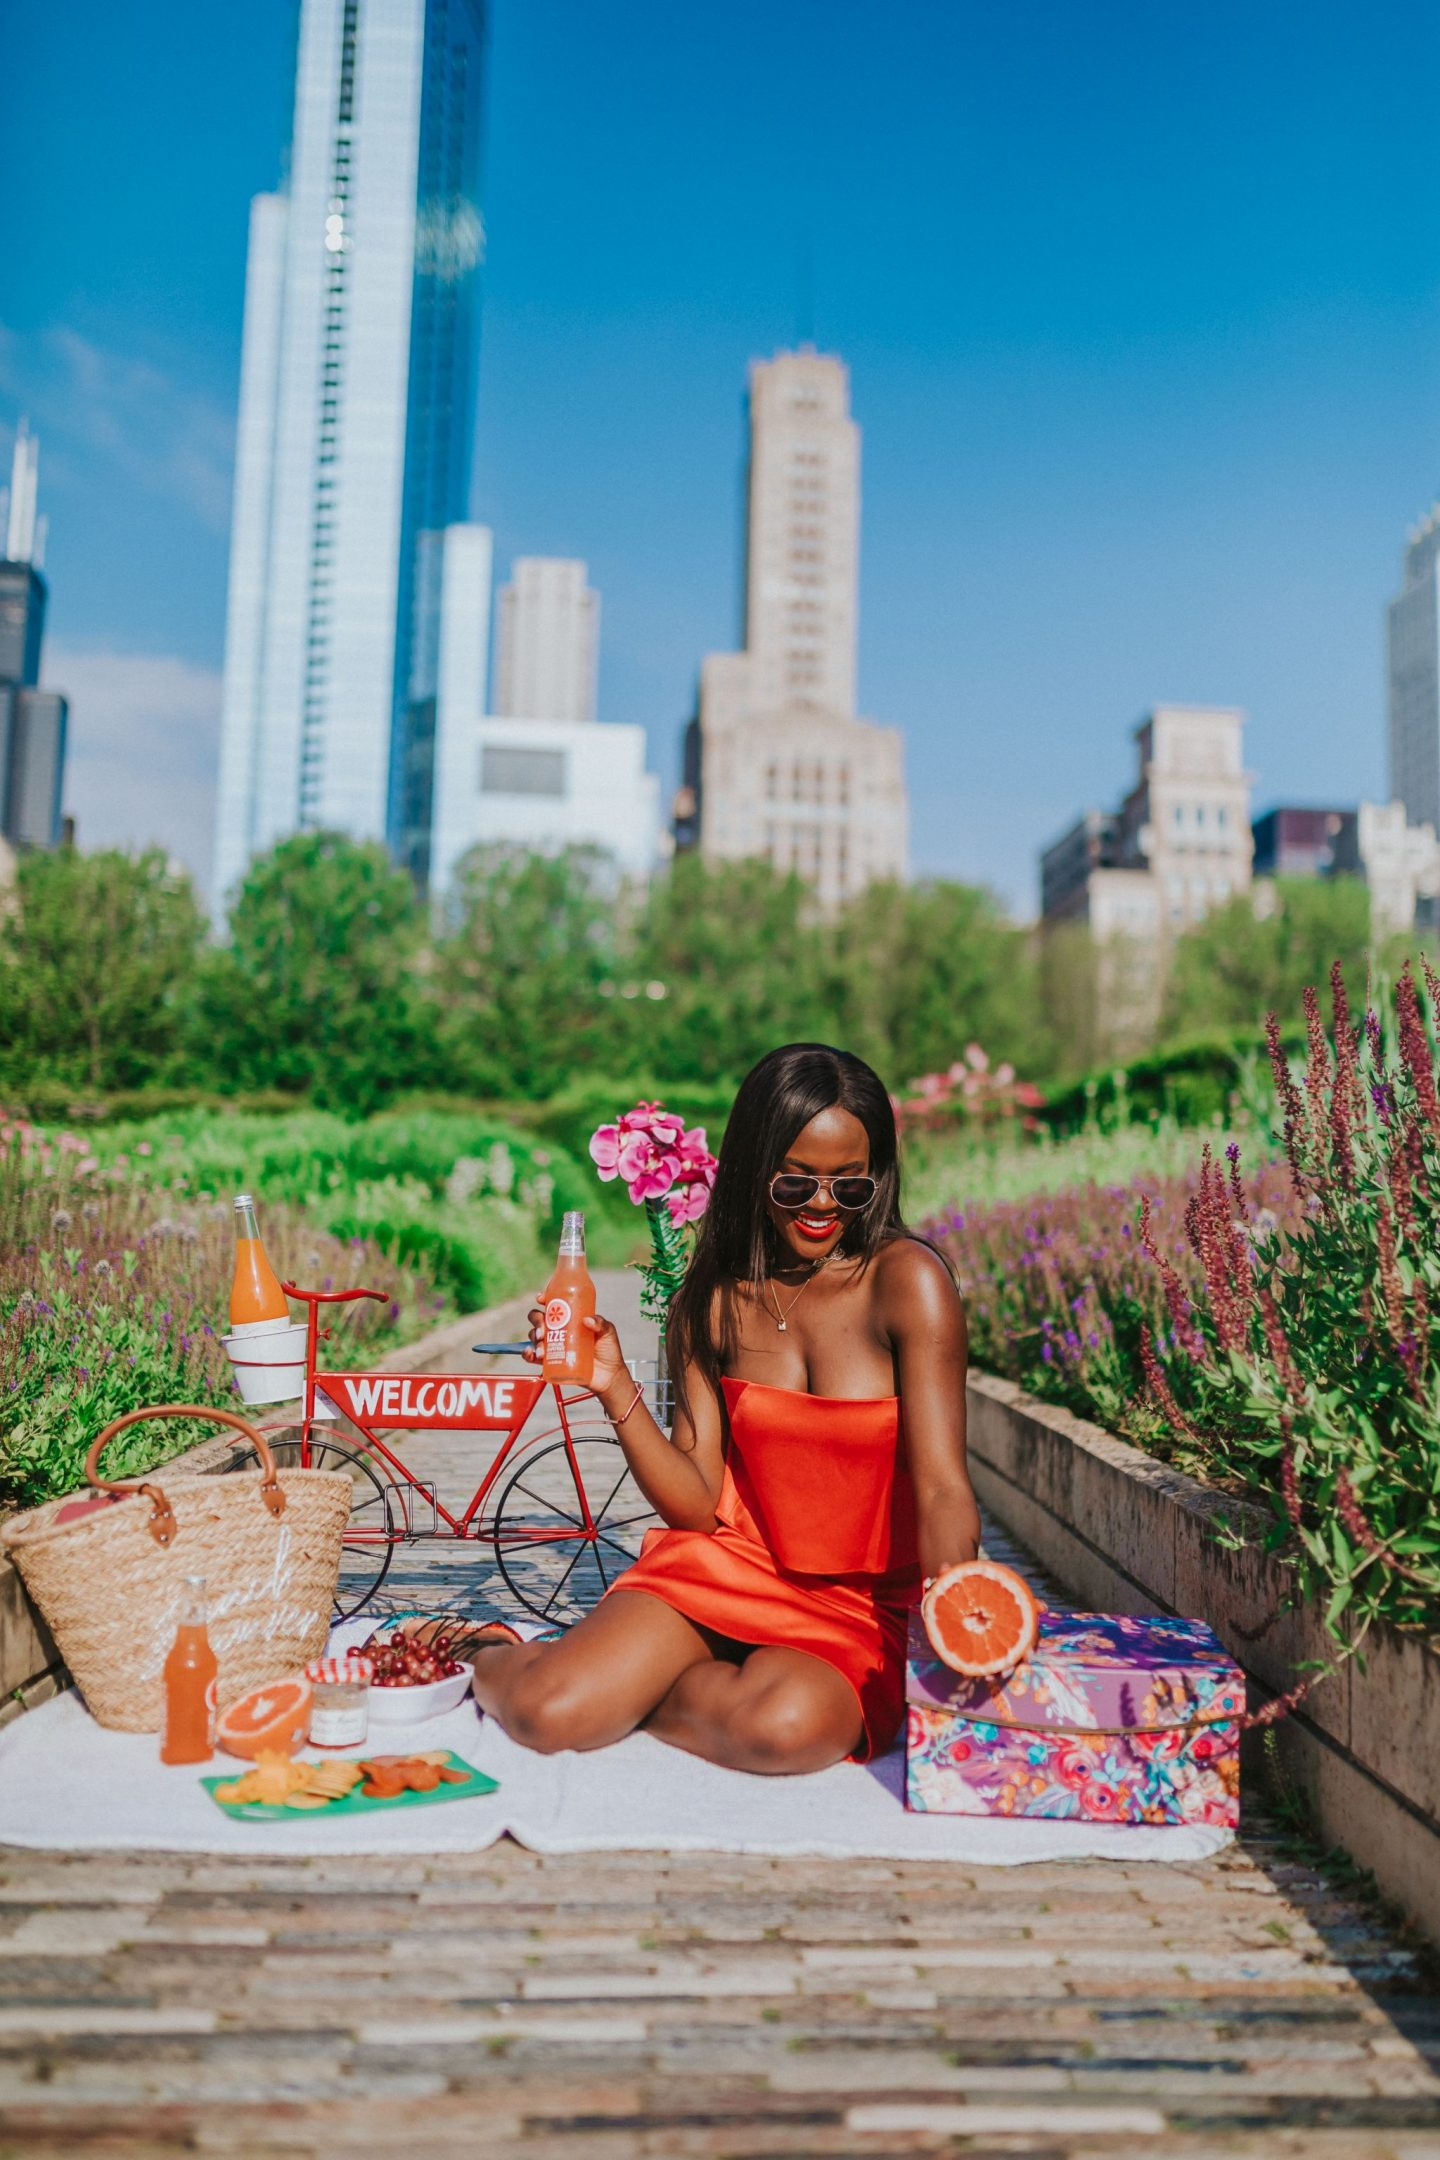 How to plnic the perfect picnic date in the park